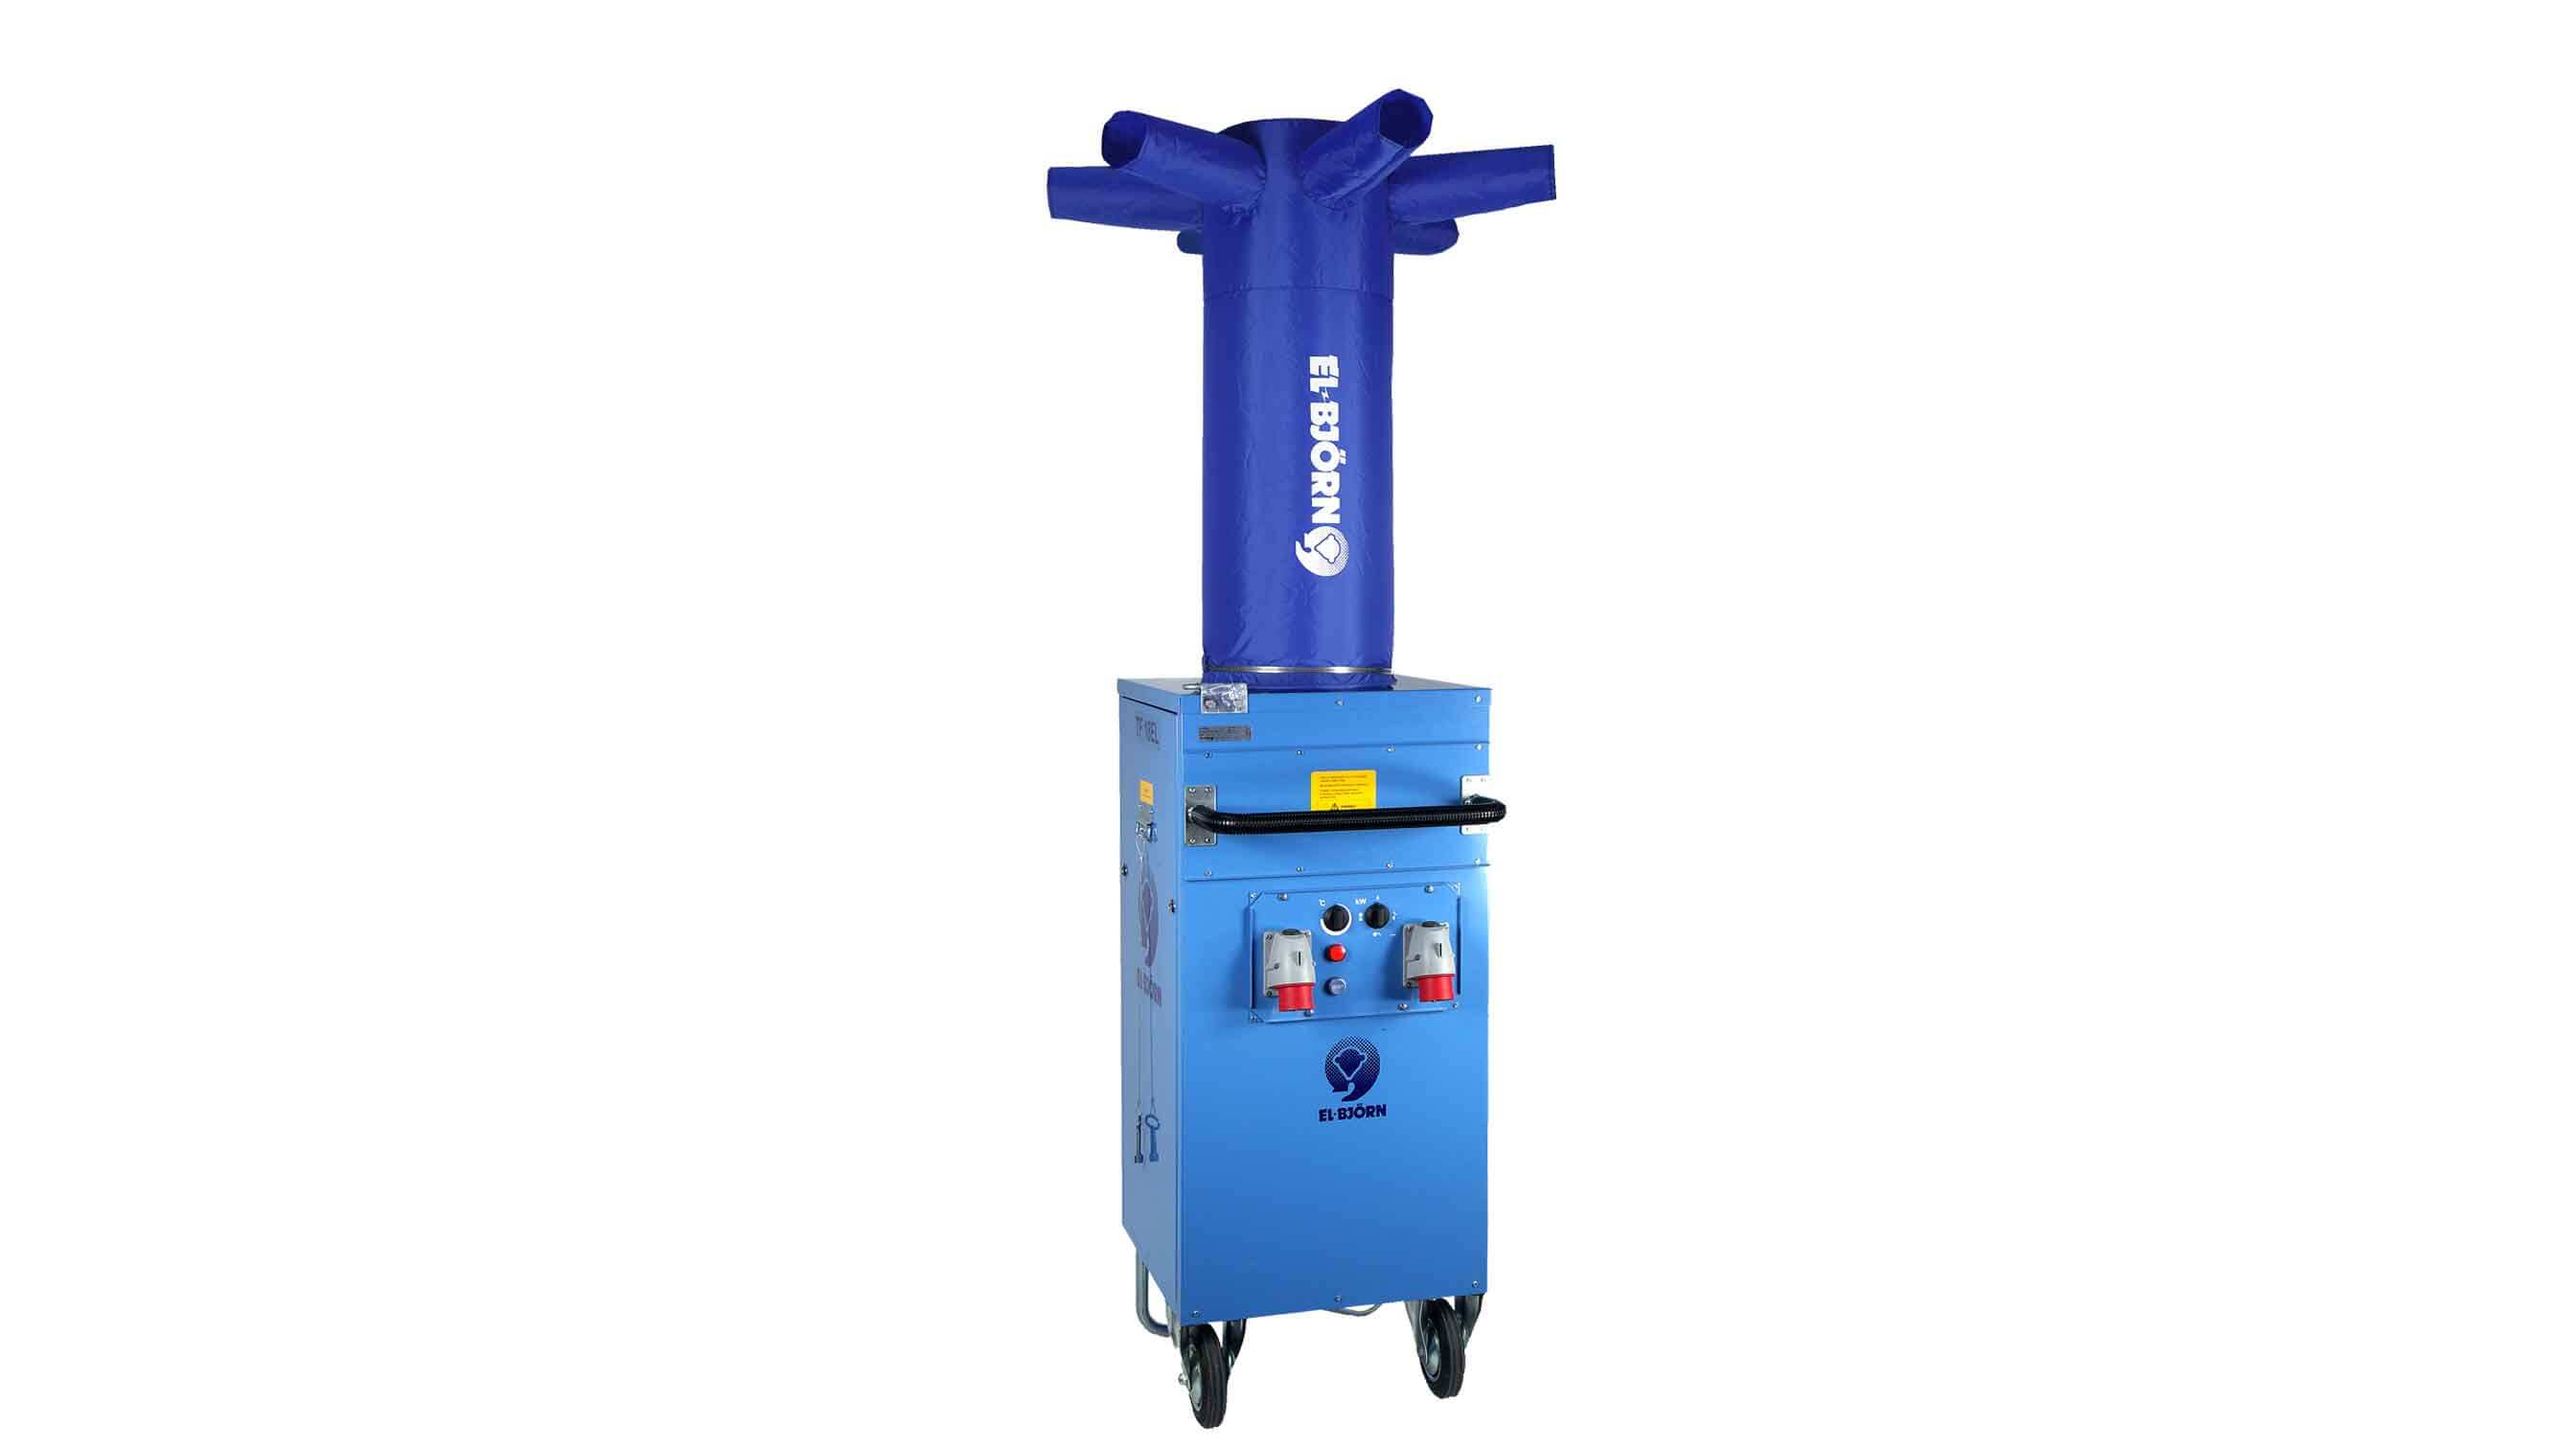 18 Kw El Industrial Electric Heater Hire I Heater Hire